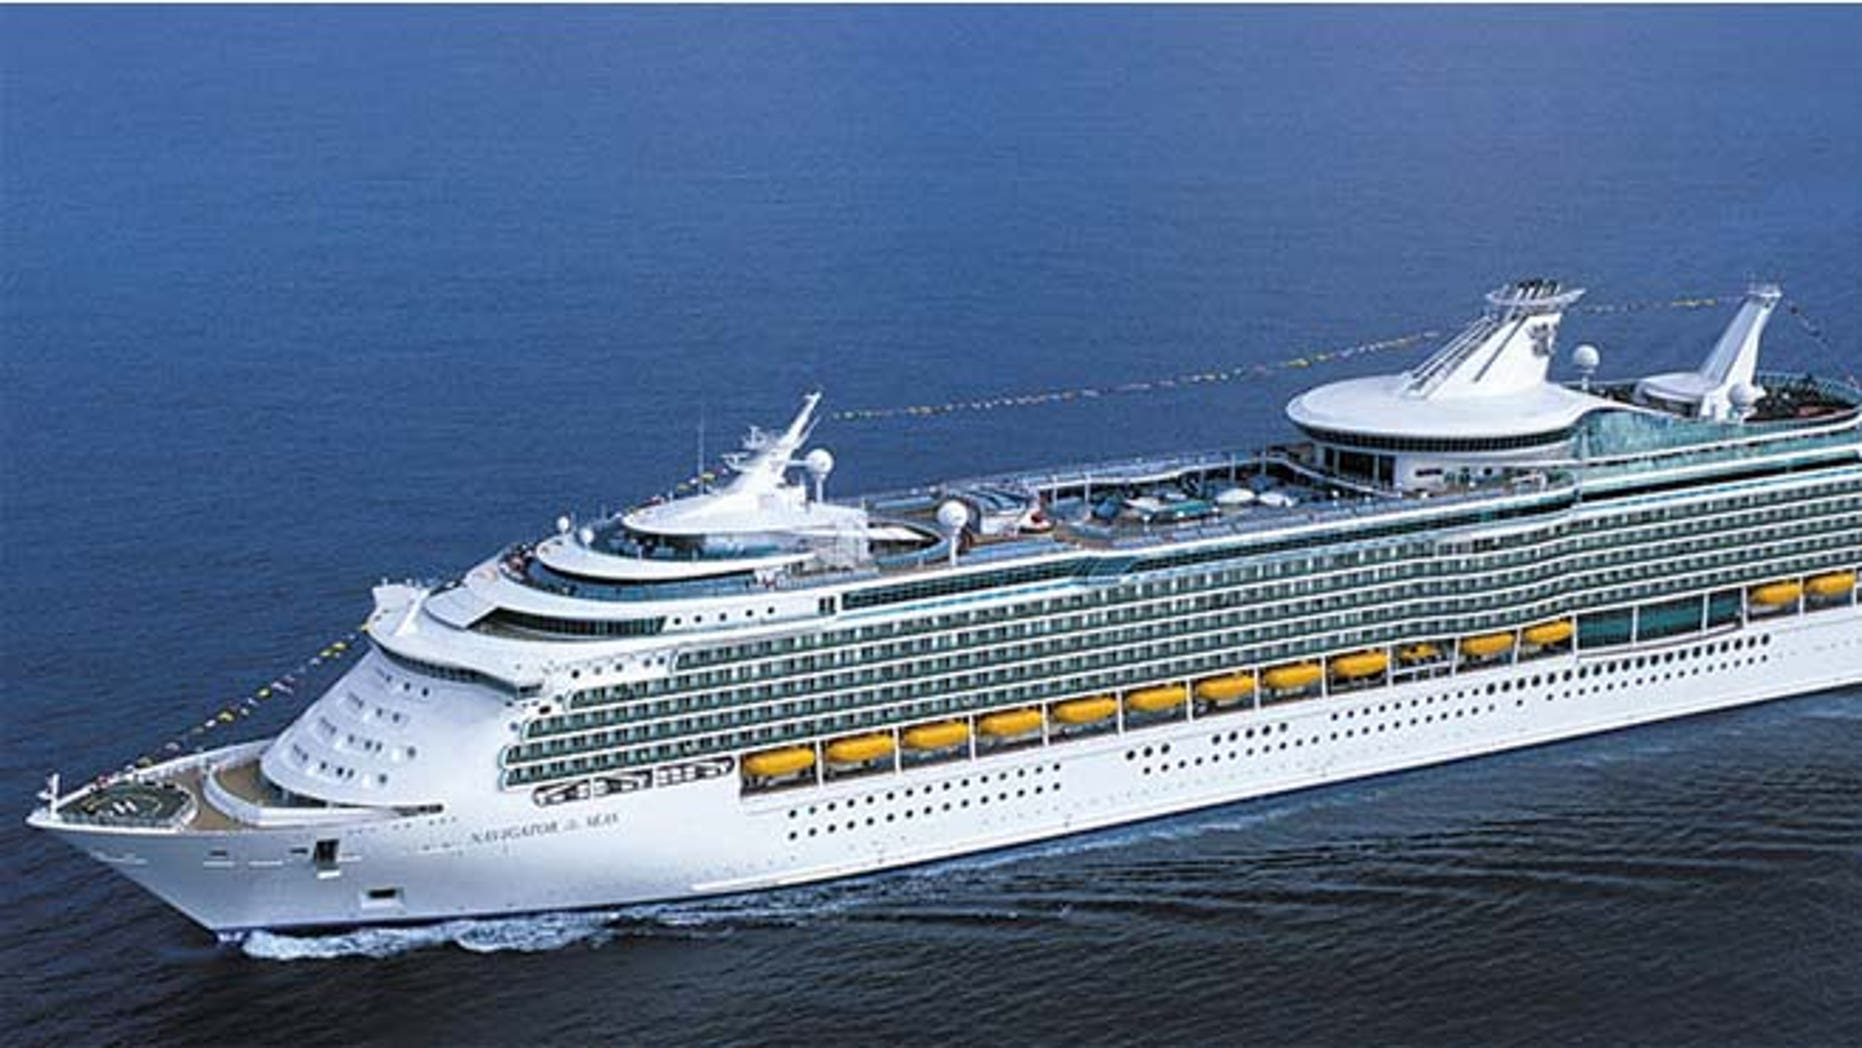 Royal Caribbean's Navigator of the Seas will begin sailing seven-day western Caribbean cruises out of Galveston year-round.